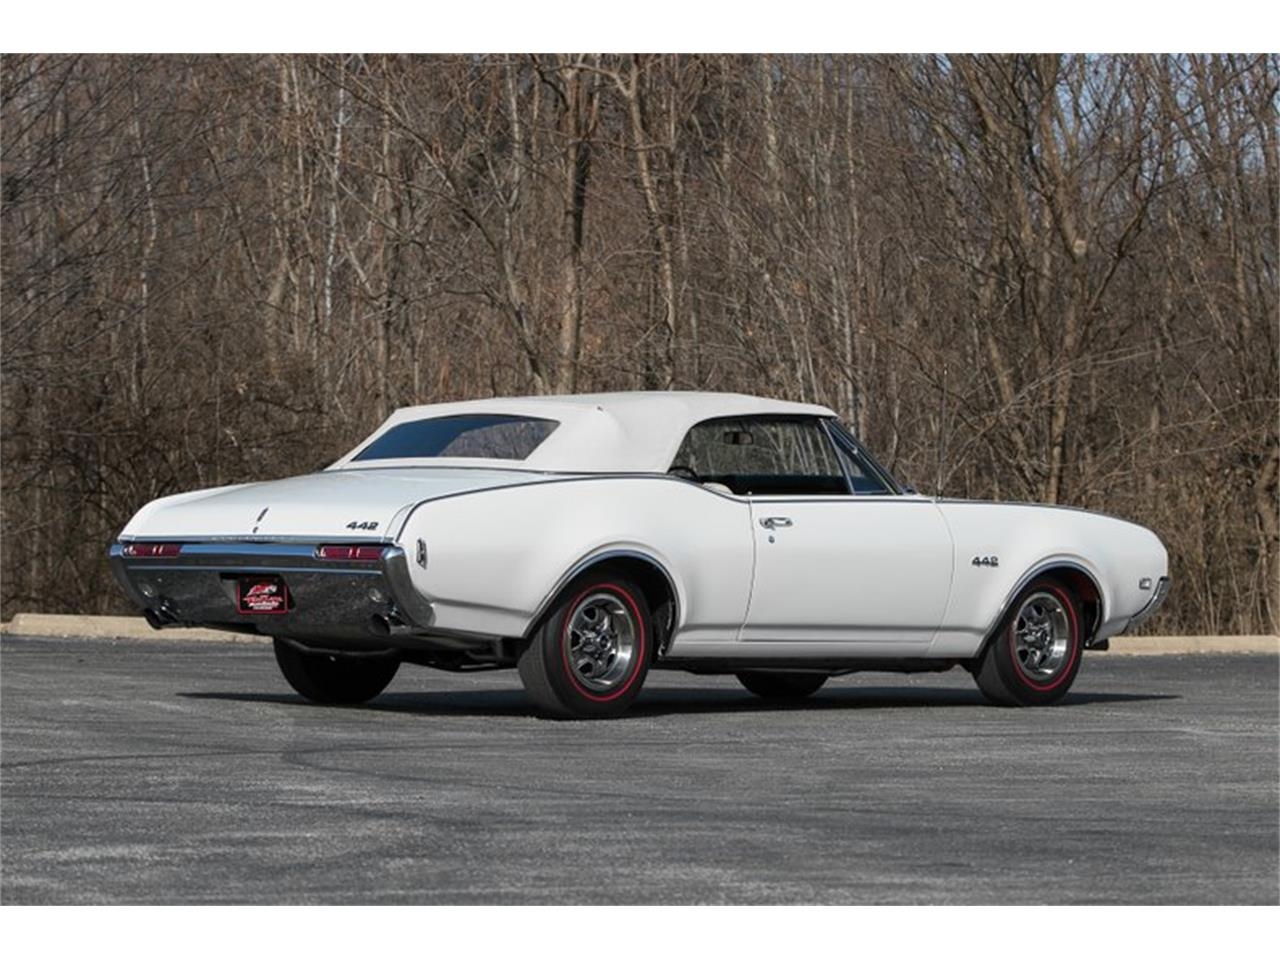 Large Picture of 1968 Oldsmobile 442 located in St. Charles Missouri - $74,995.00 Offered by Fast Lane Classic Cars Inc. - PH8S